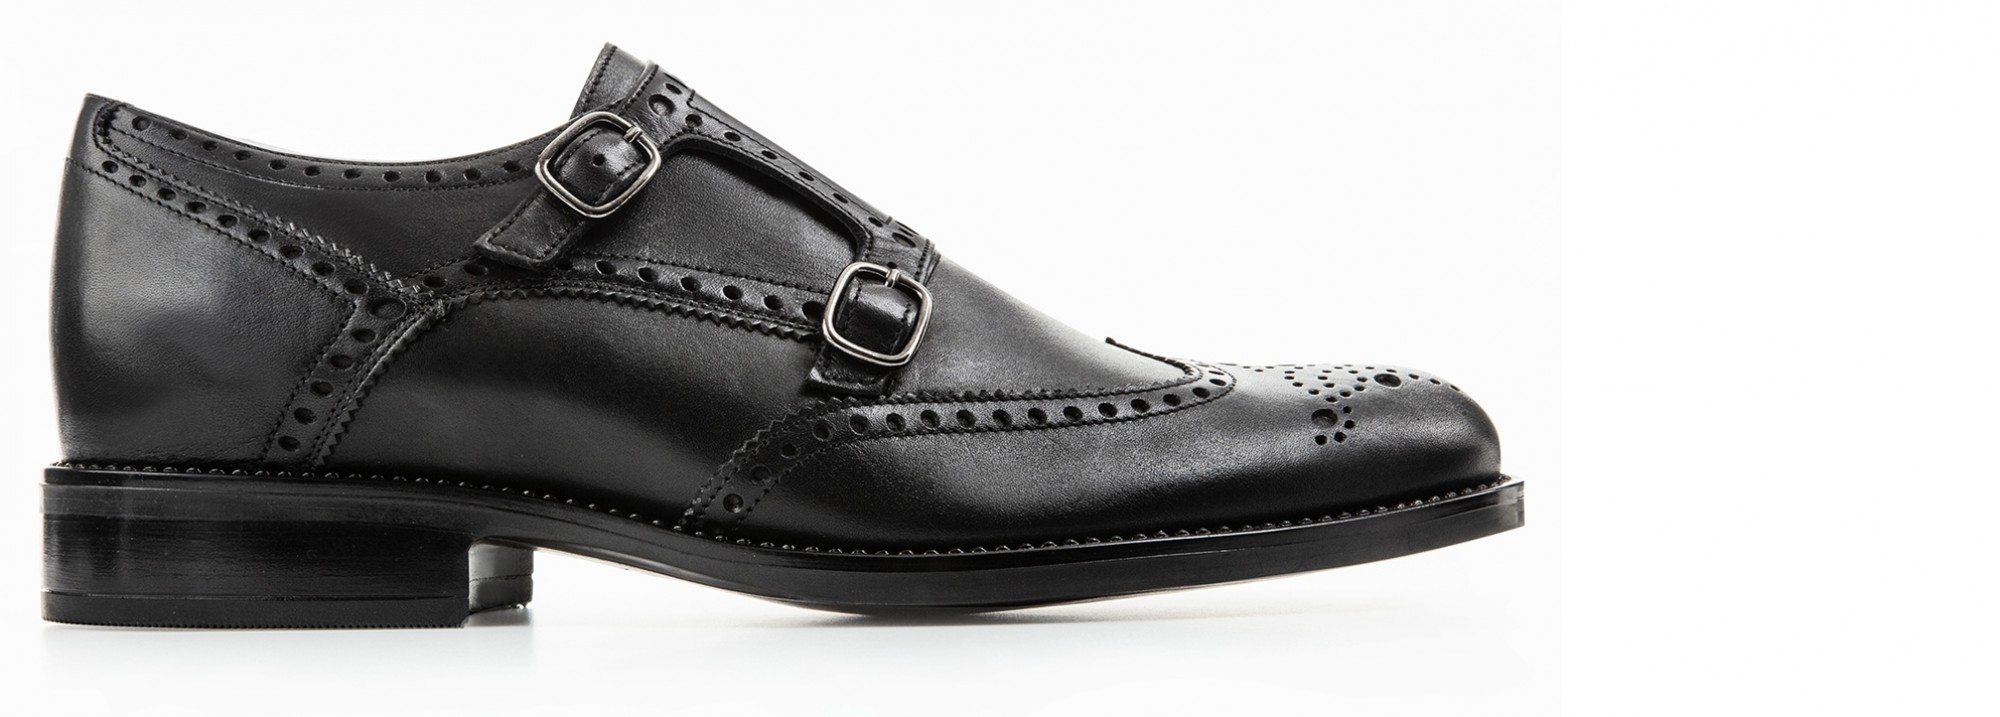 Gianni elevator shoes